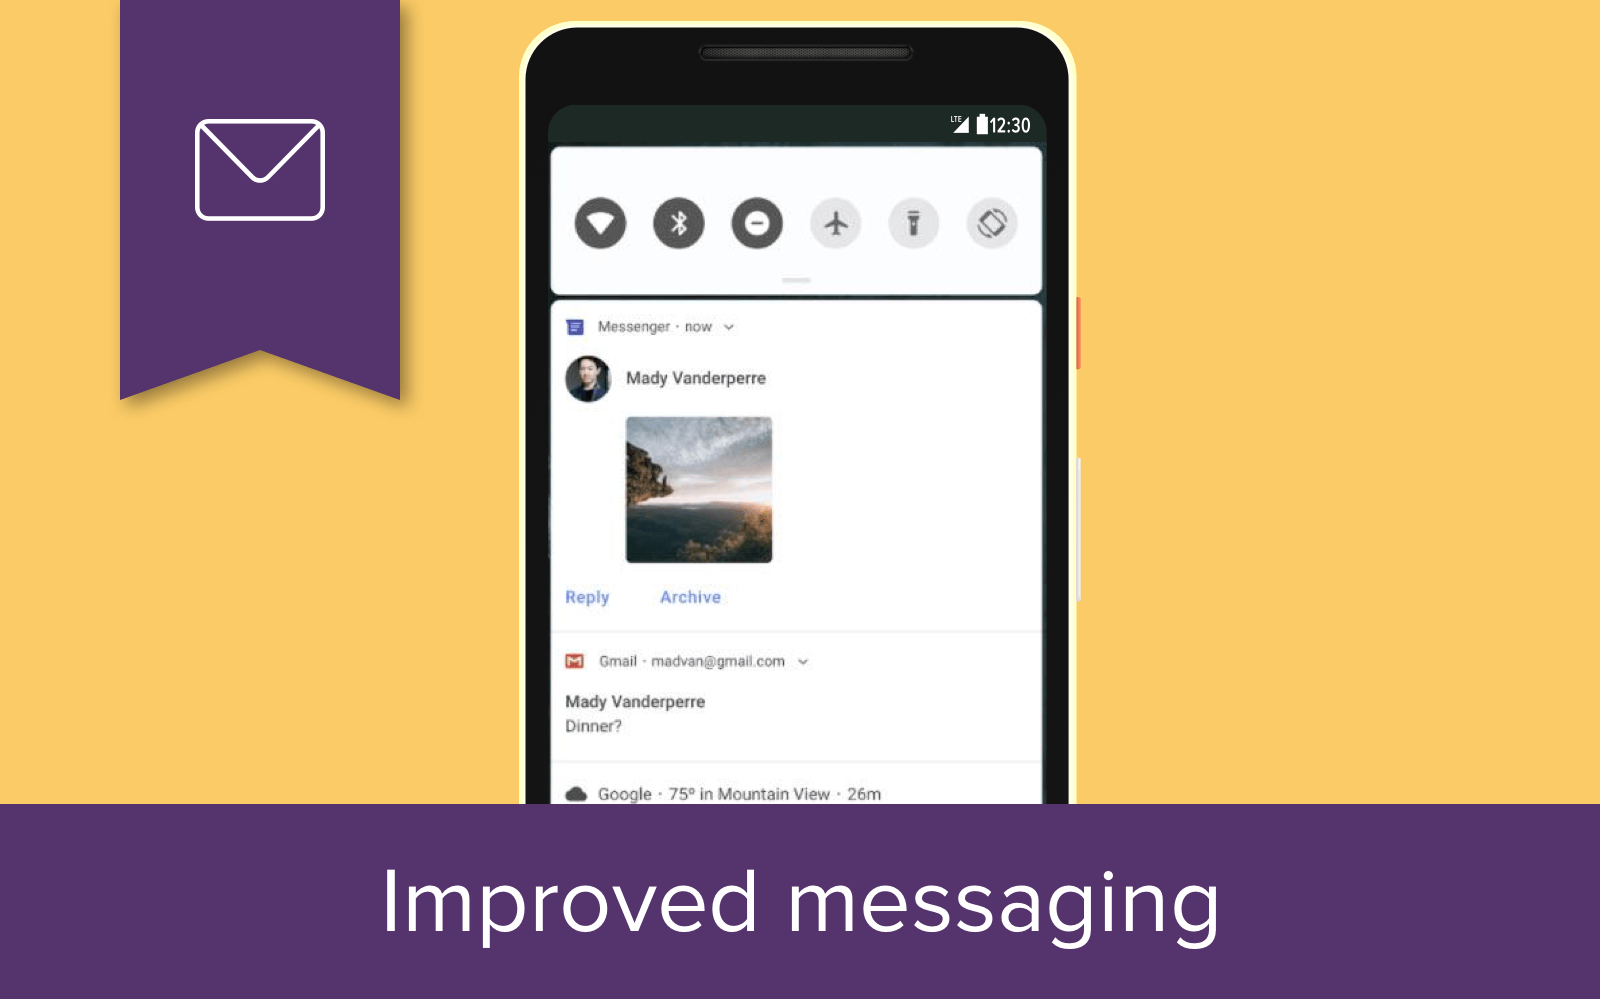 Android P 9.0: Improved messaging